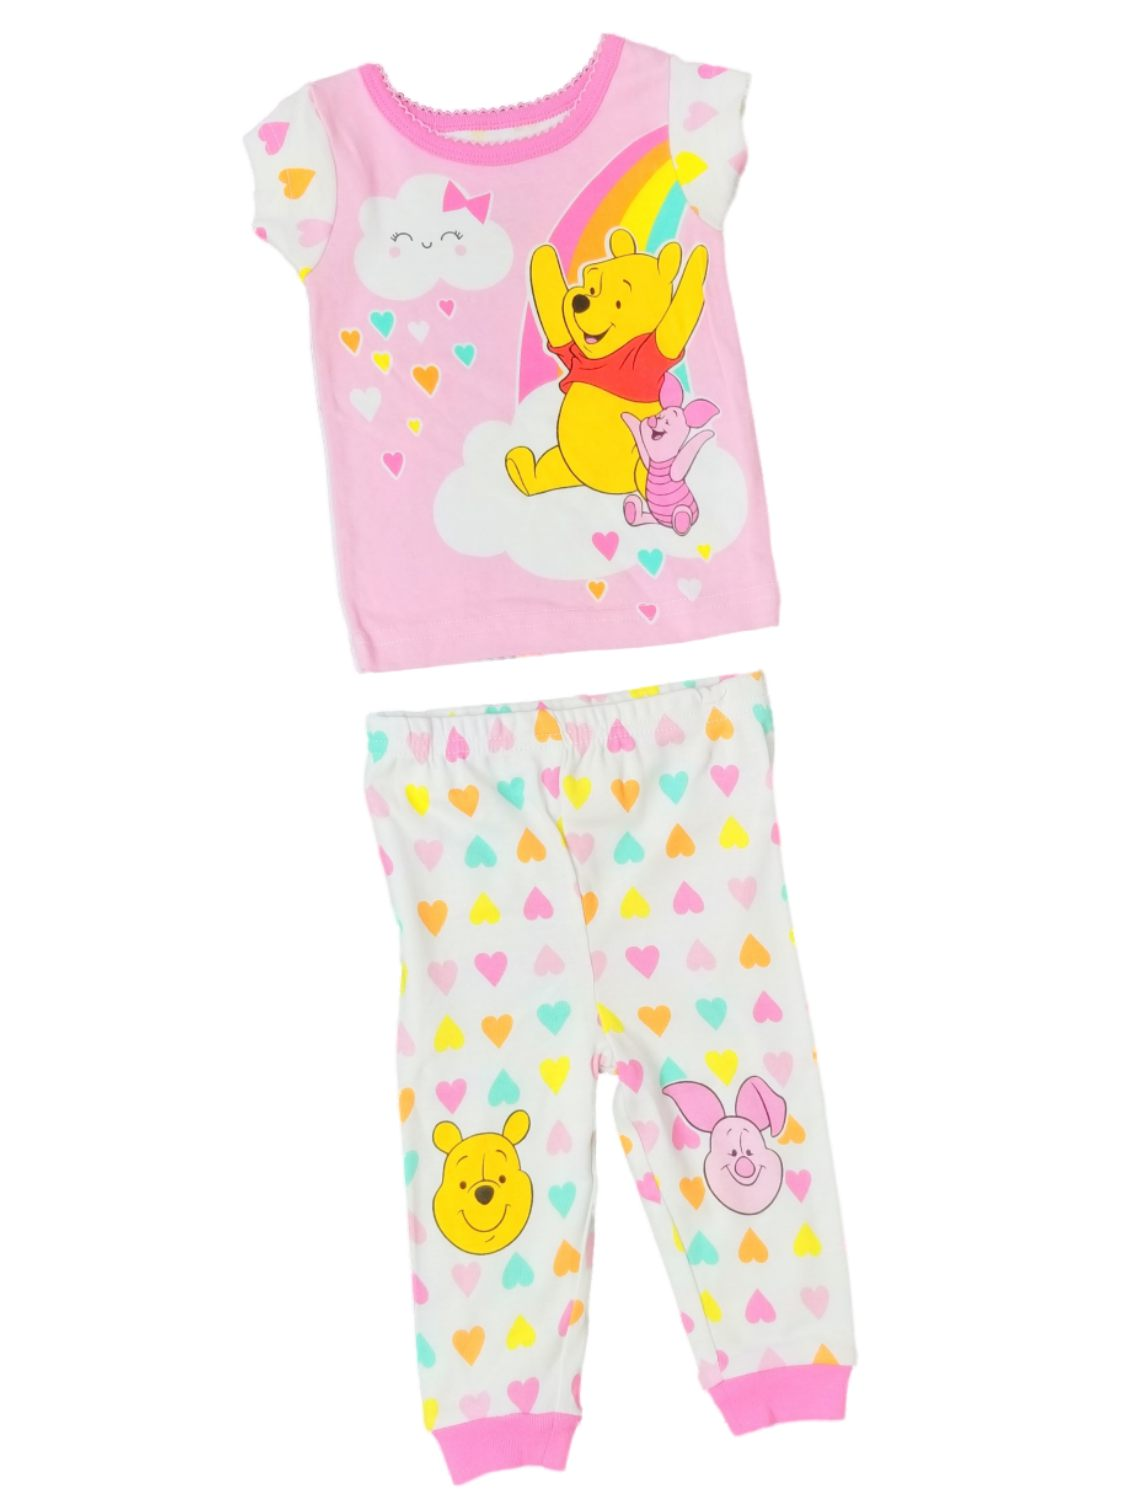 Disney Infant Girls Pink Winnie The Pooh Heart Sleeper Pajamas PJs Set 9M